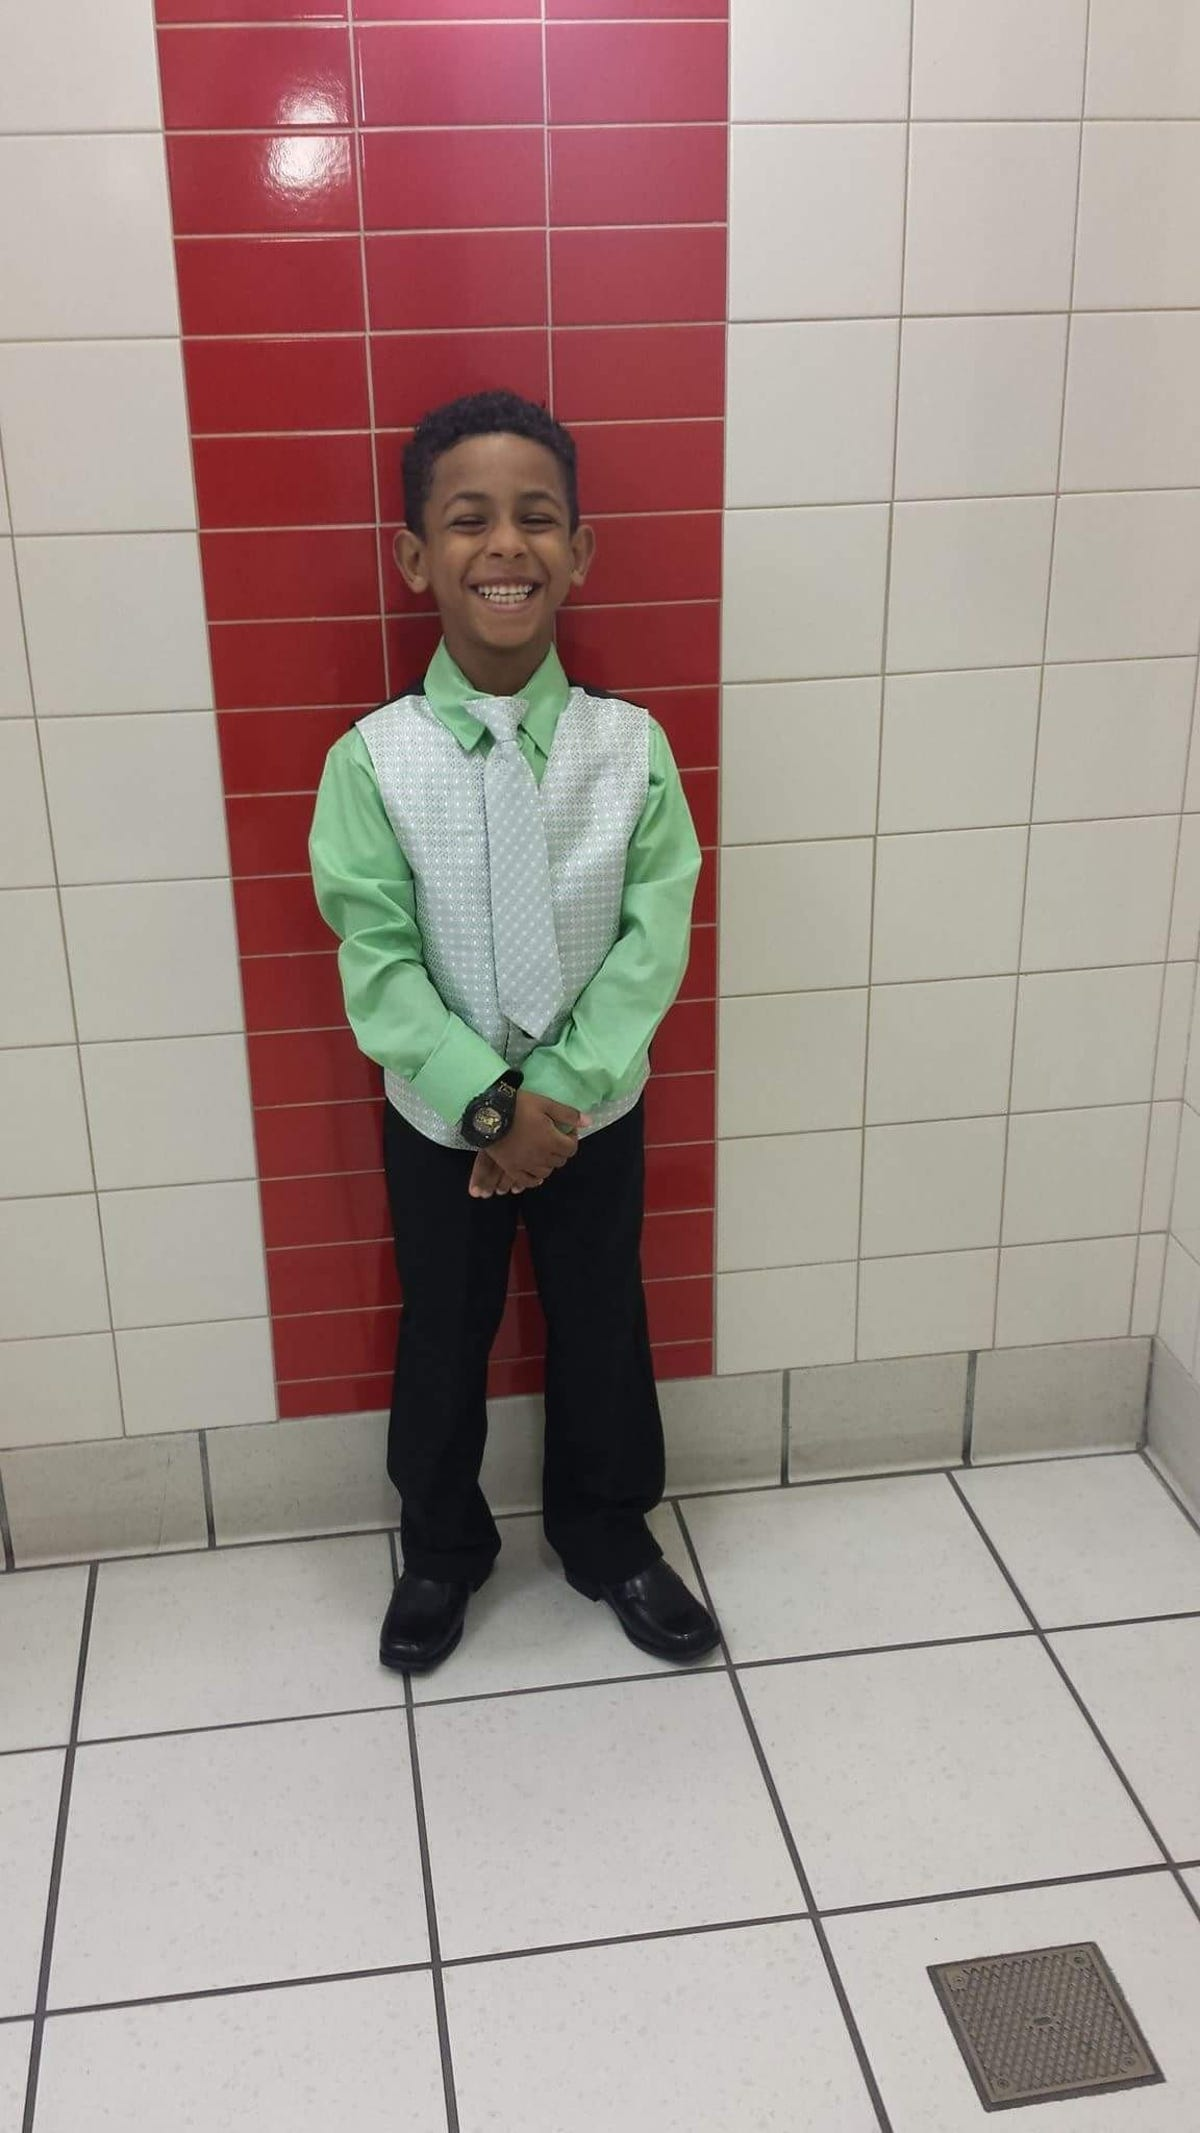 8-year-old's parents sue CPS, blame bullying for son's suicide